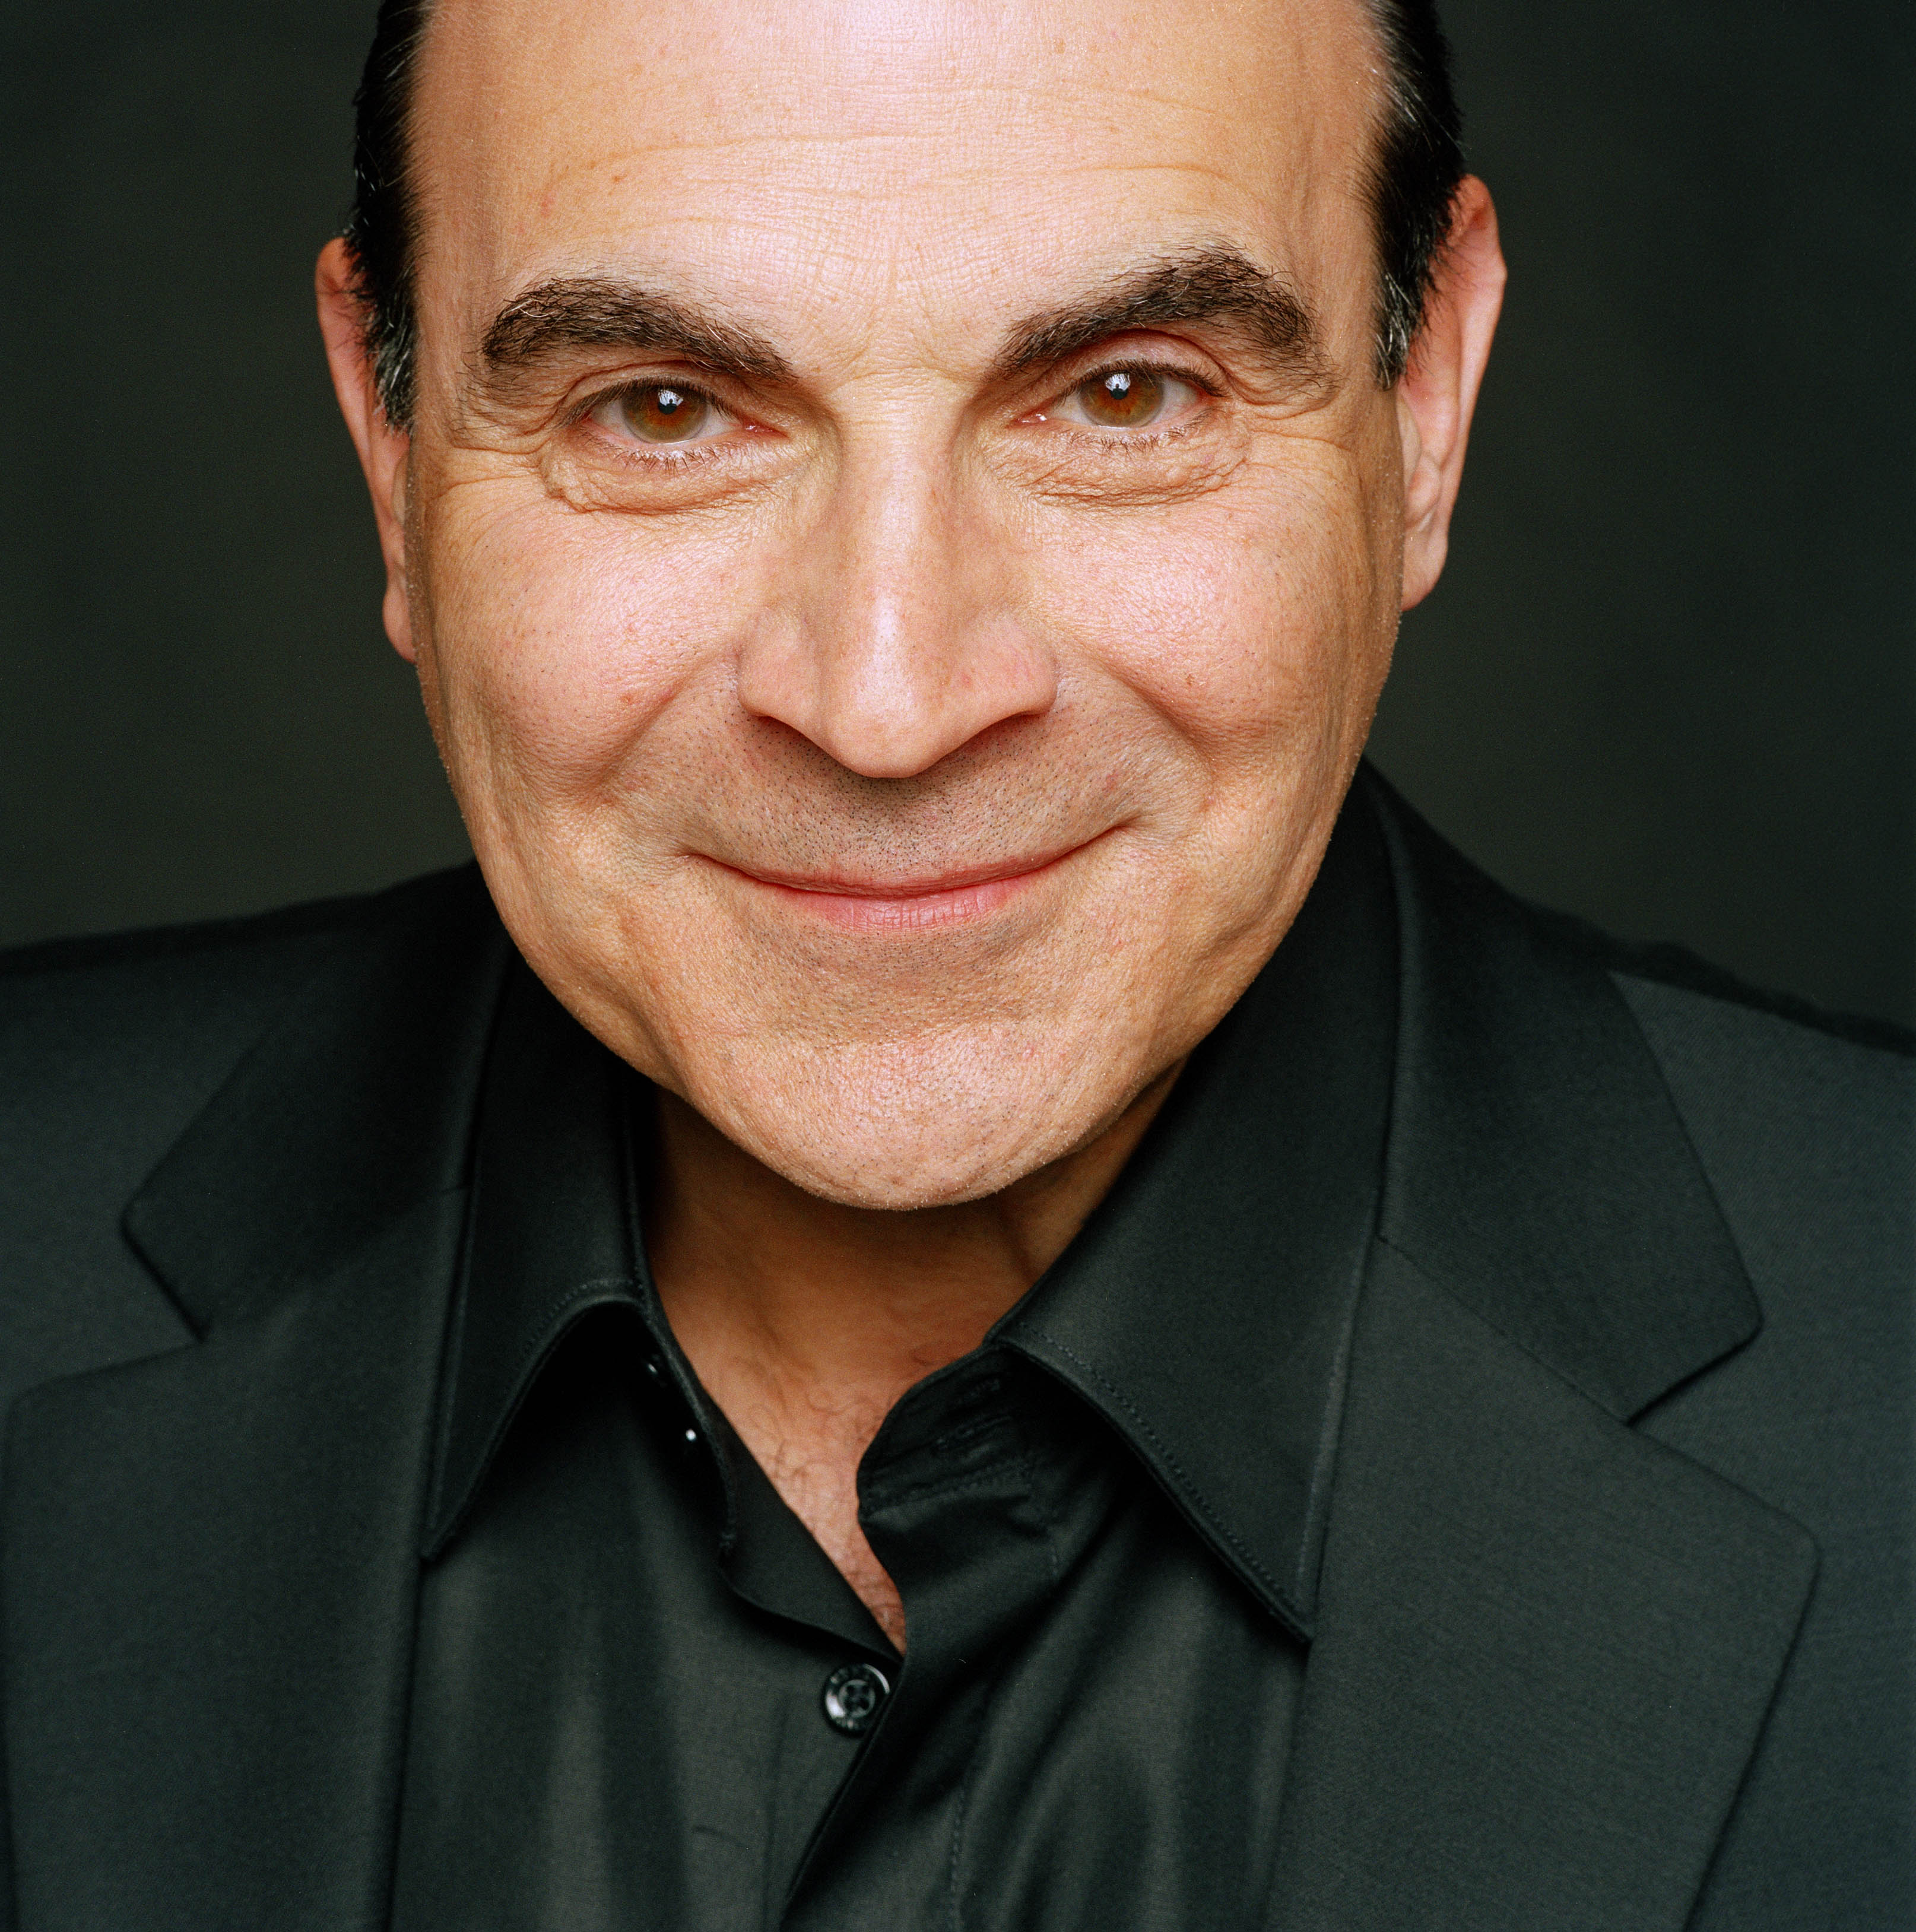 David Suchet photo, pics, wallpaper - photo #